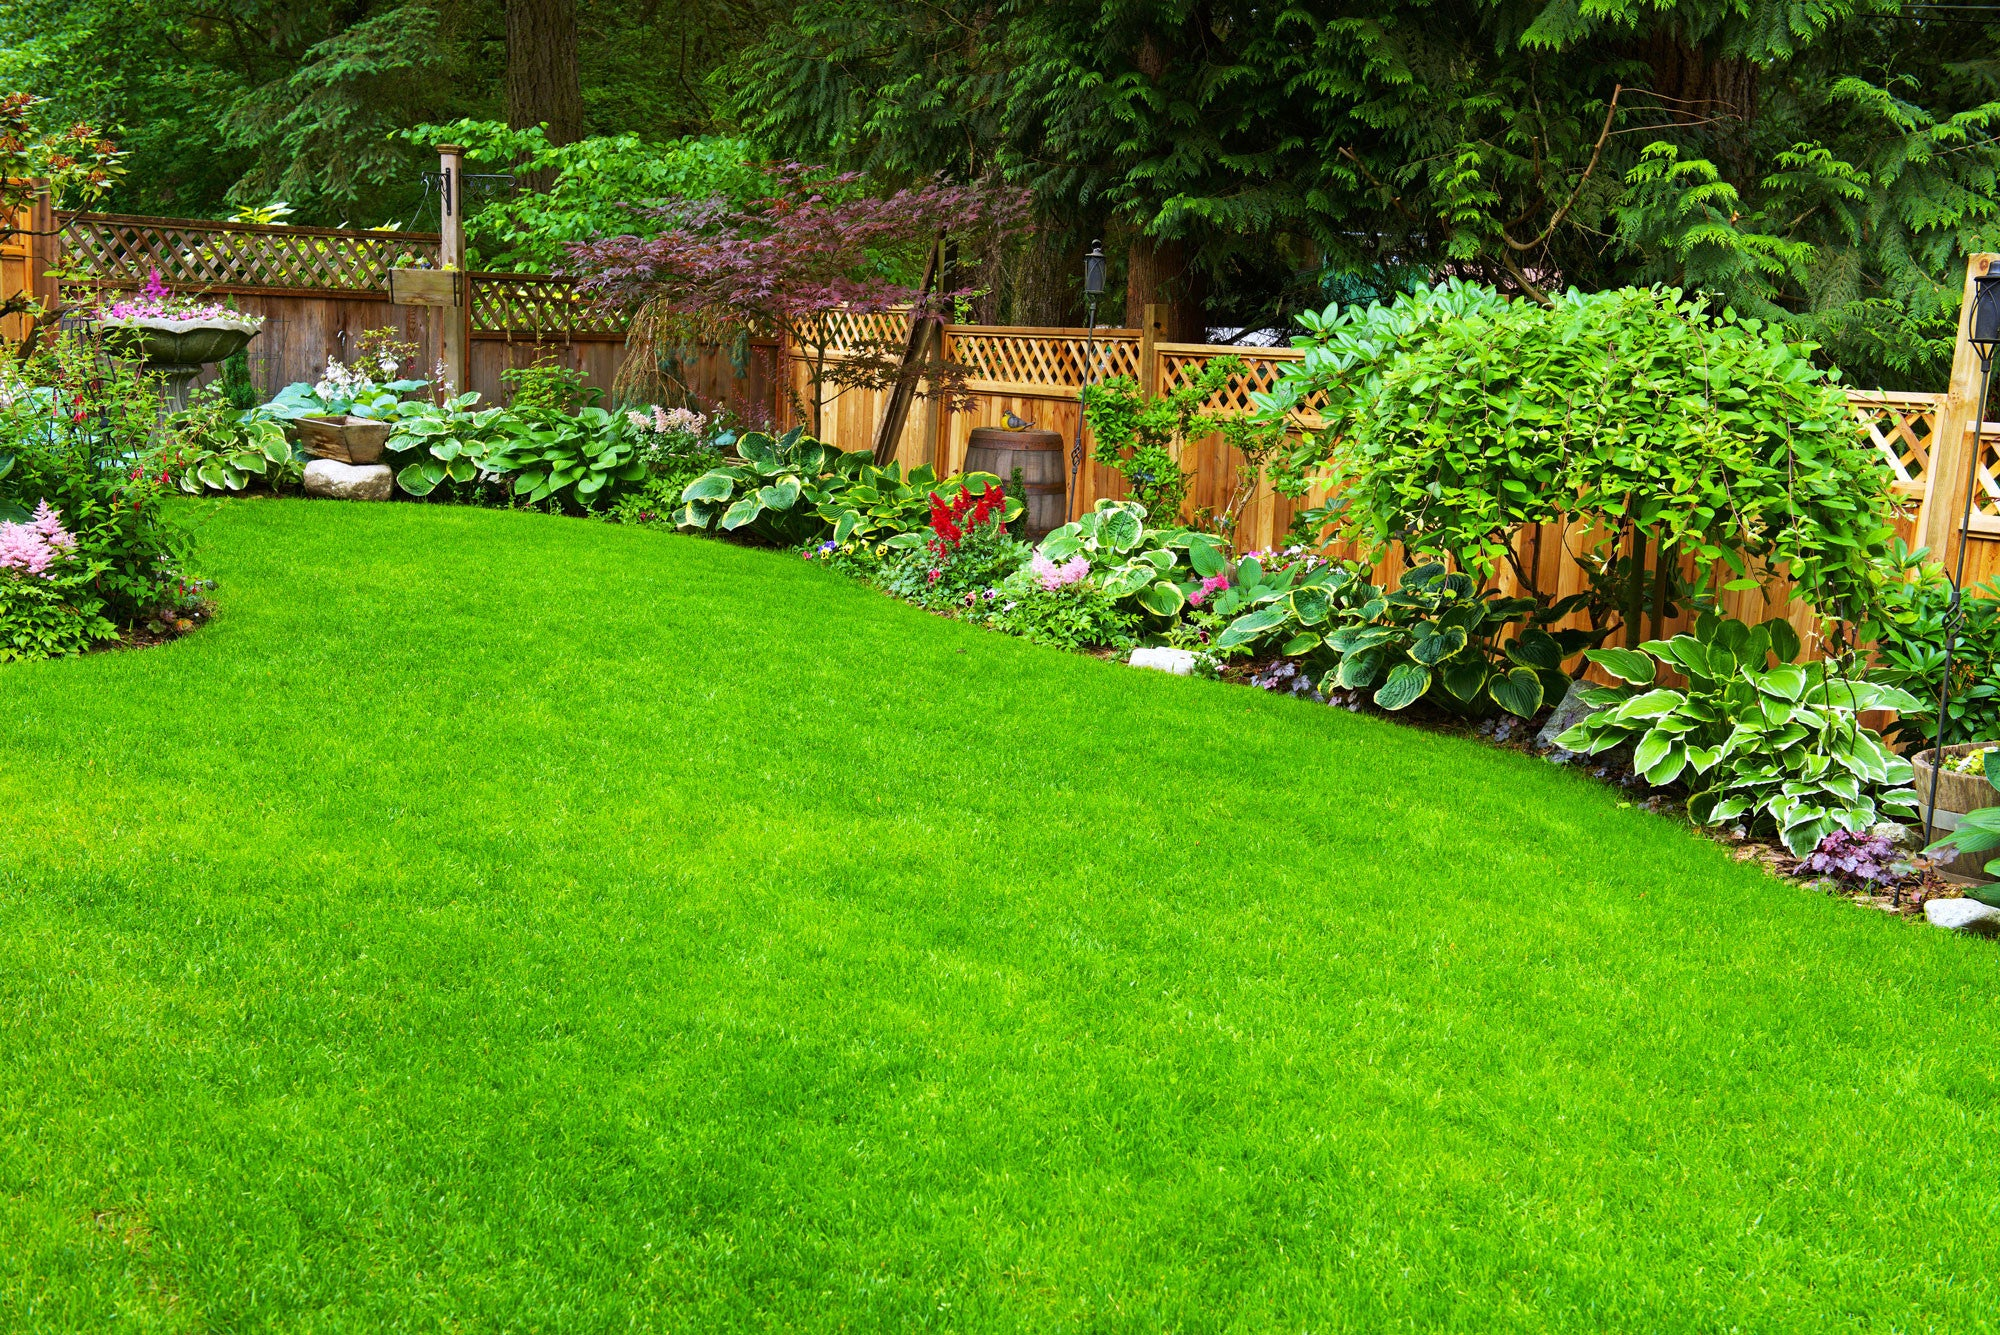 Top 5 Tips for Creating a New Lawn